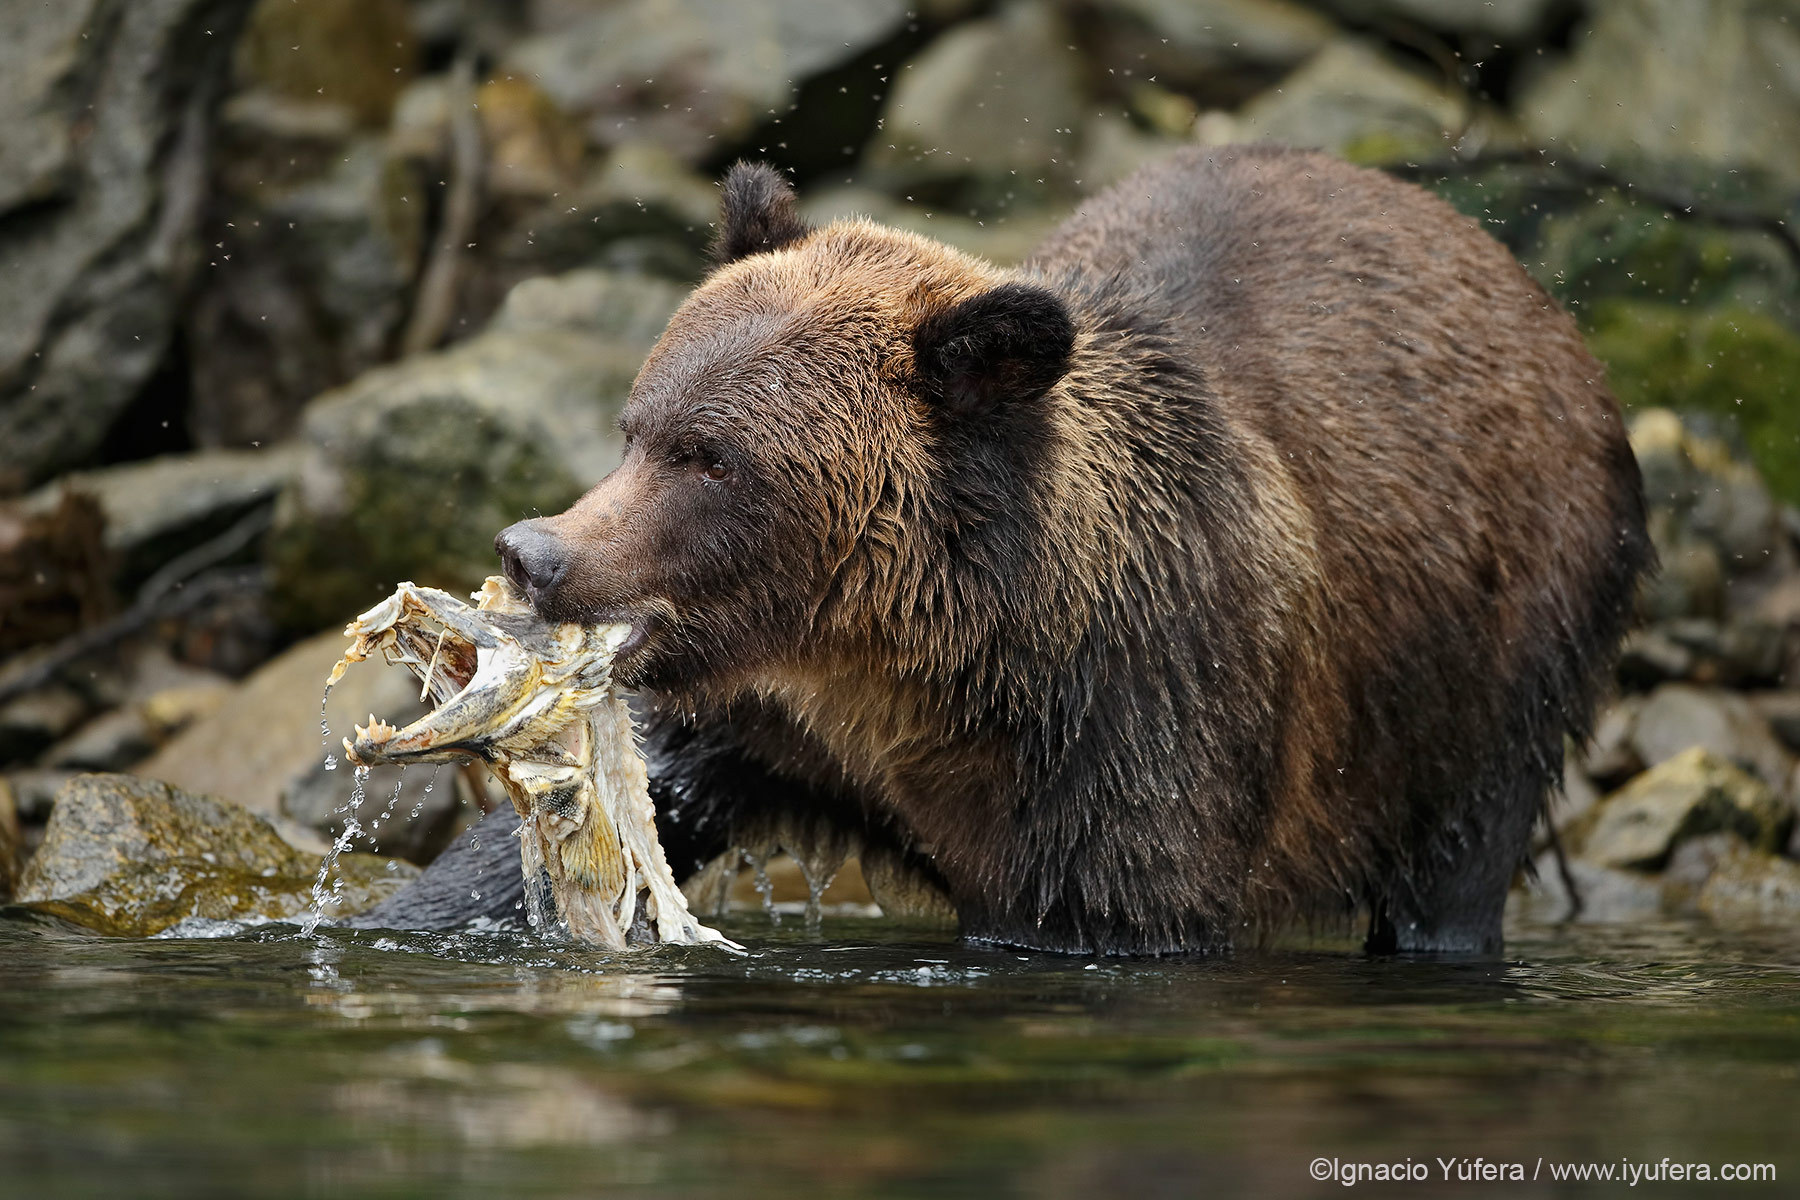 Grizzly bear with salmon carcass